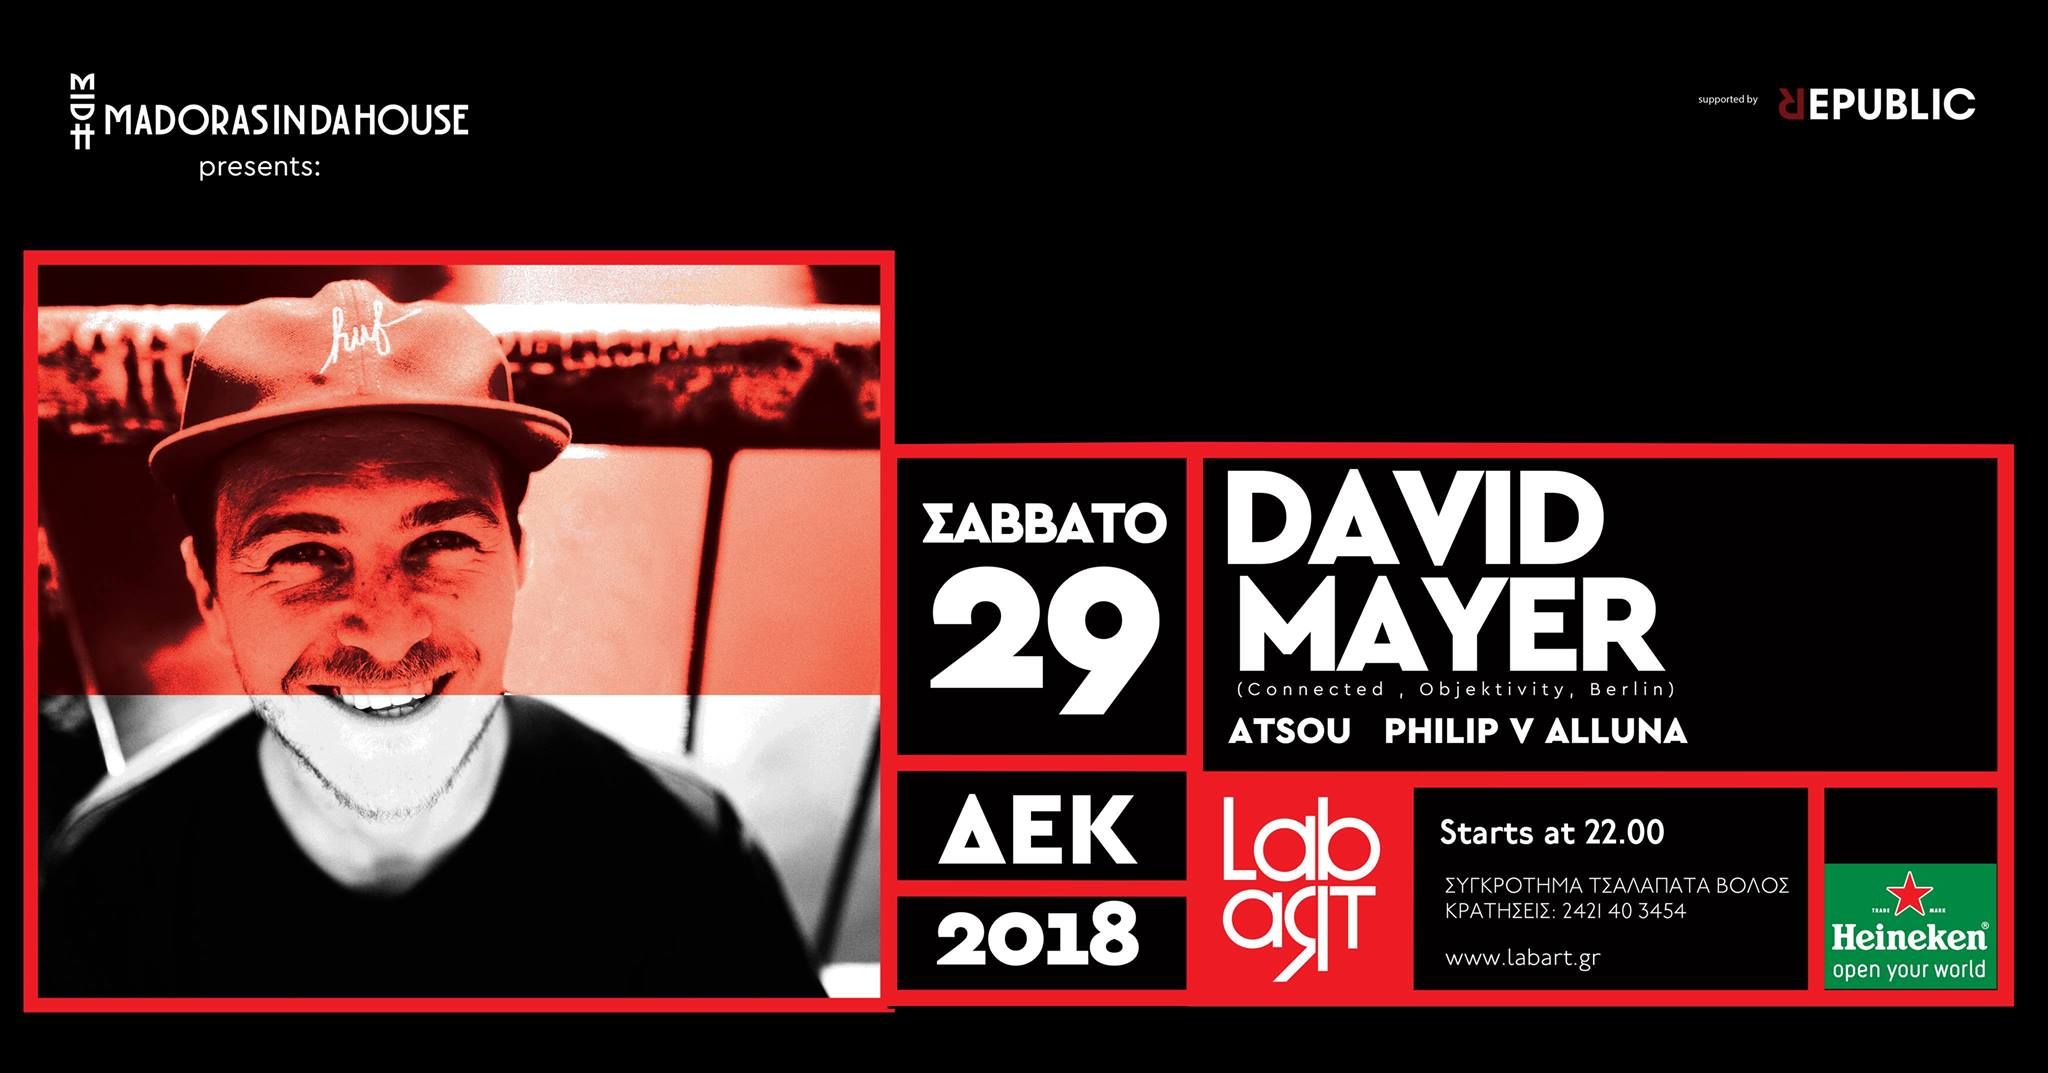 LabArt x Madorasindahouse w/ David Mayer (Berlin)